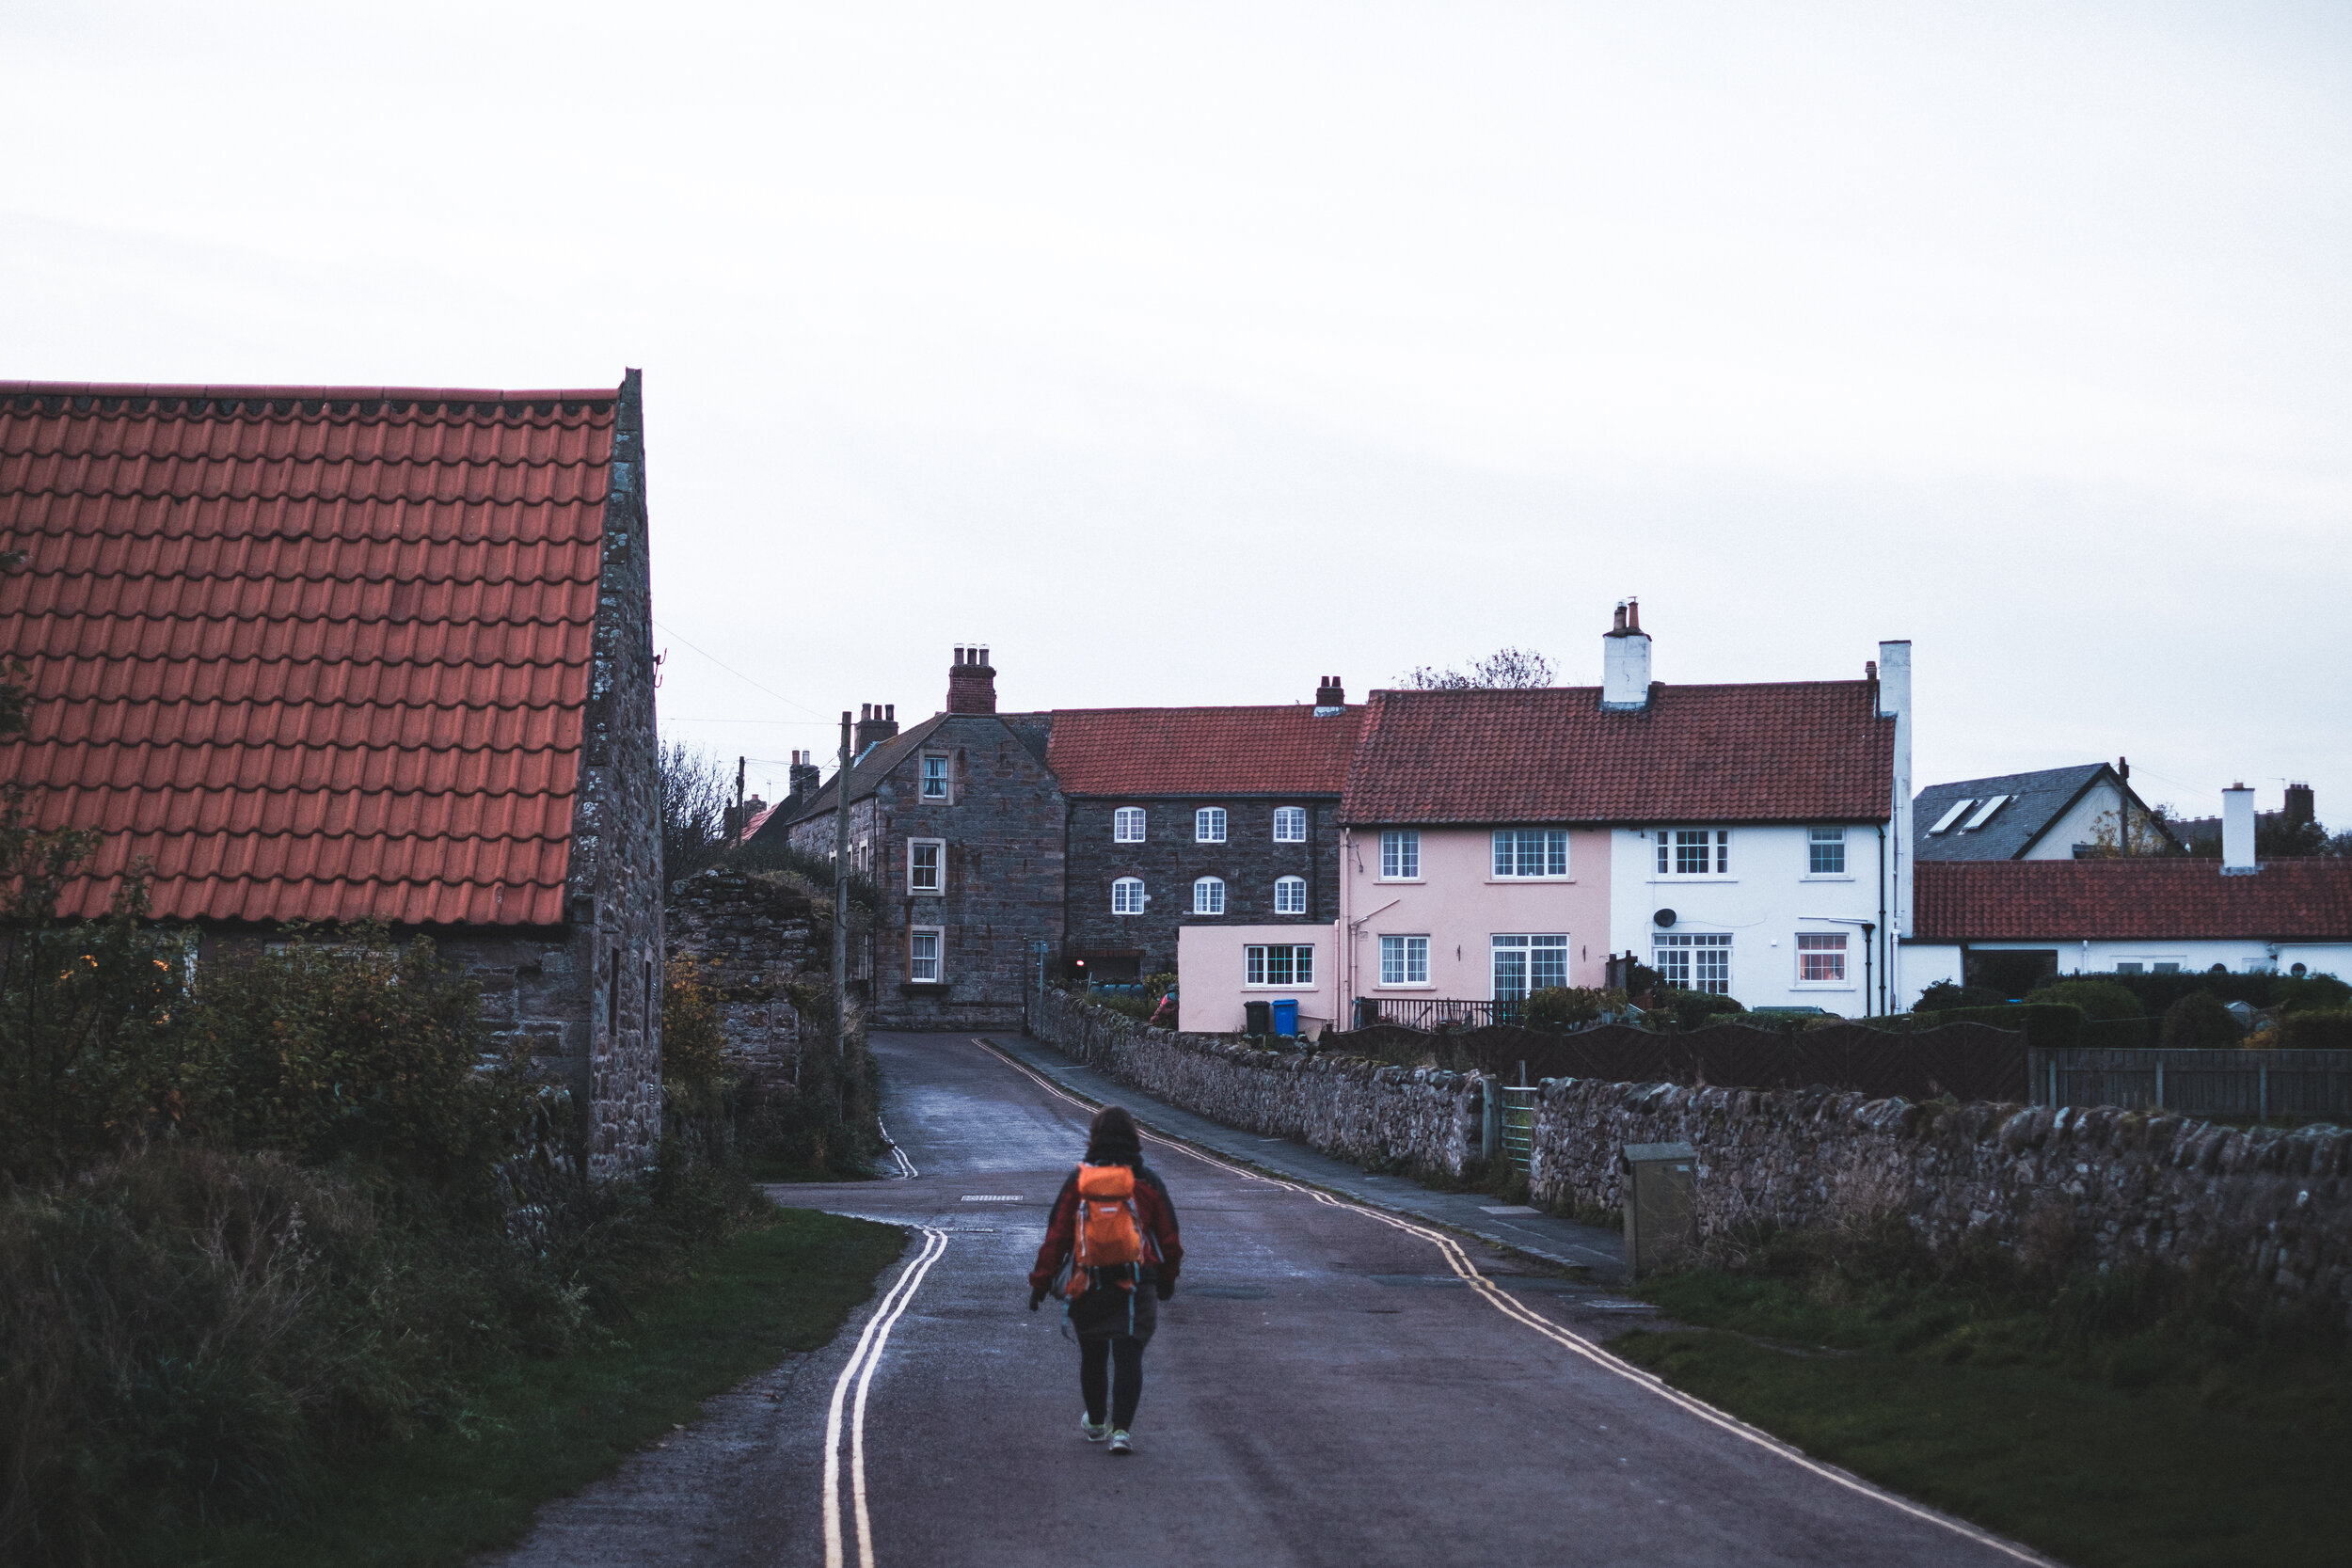 A woman walks down a quiet road at dusk on Holy Island in England